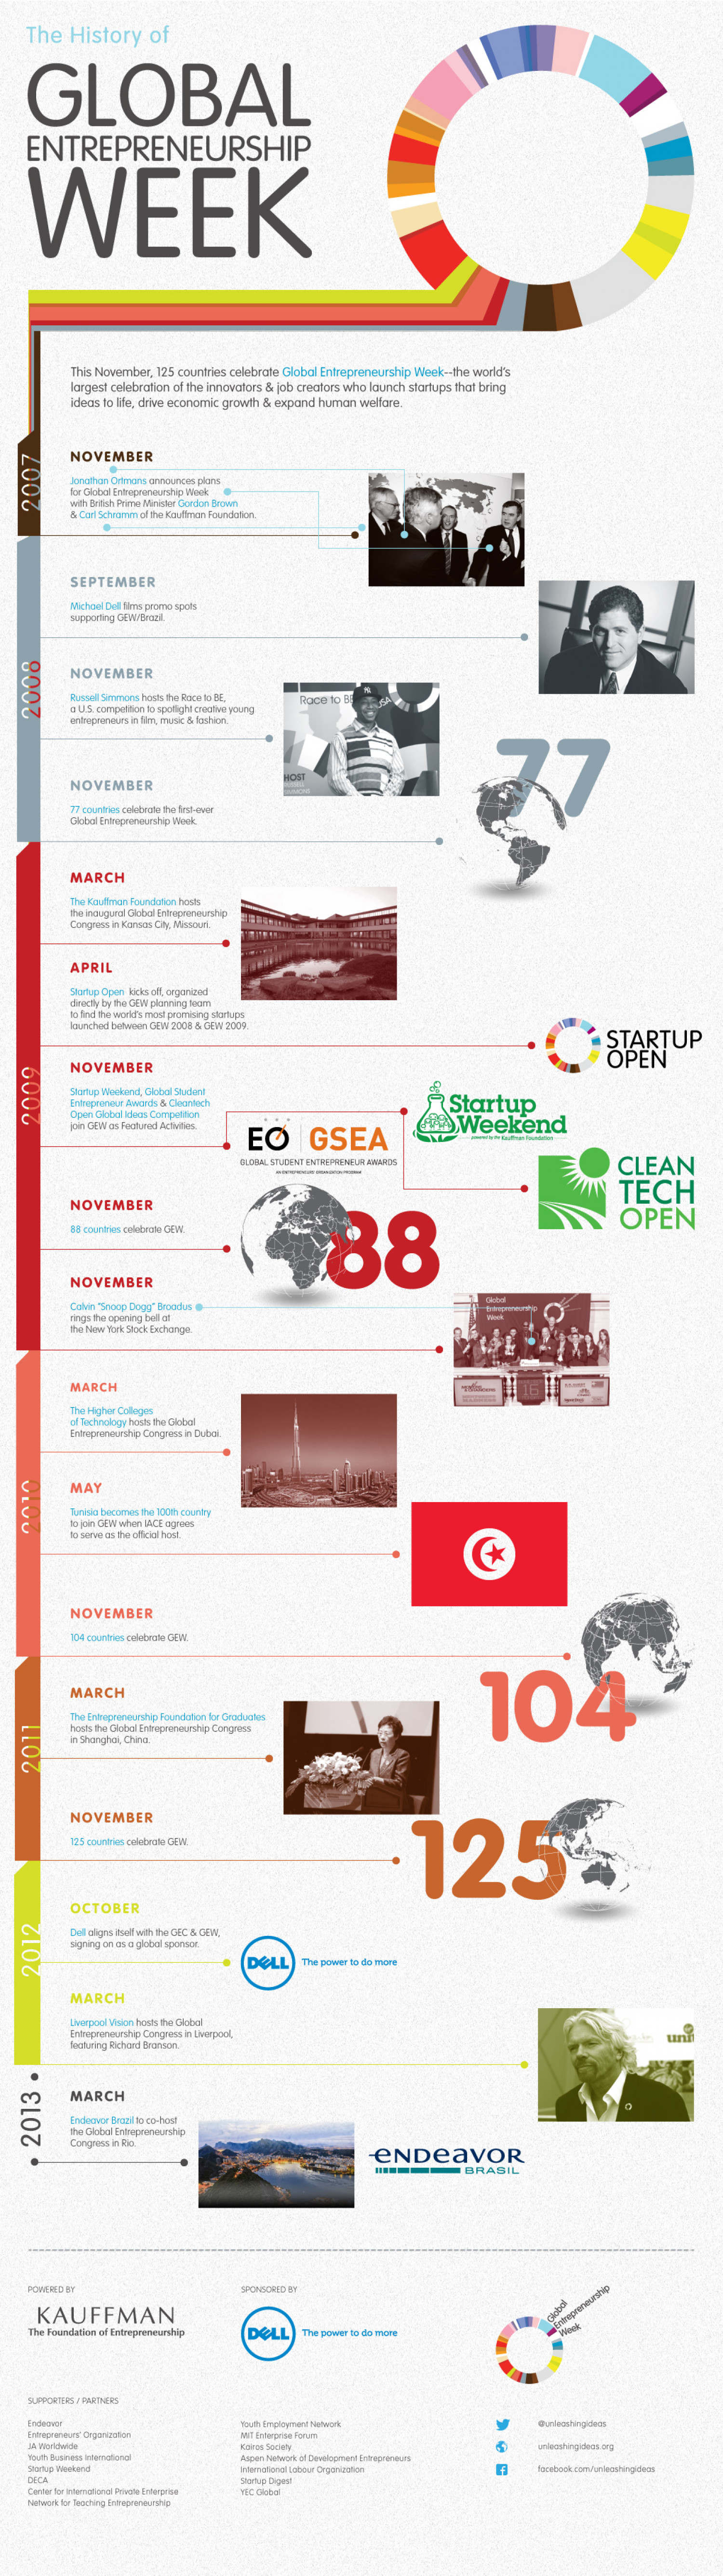 The History of Global Entrepreneurship Week Infographic